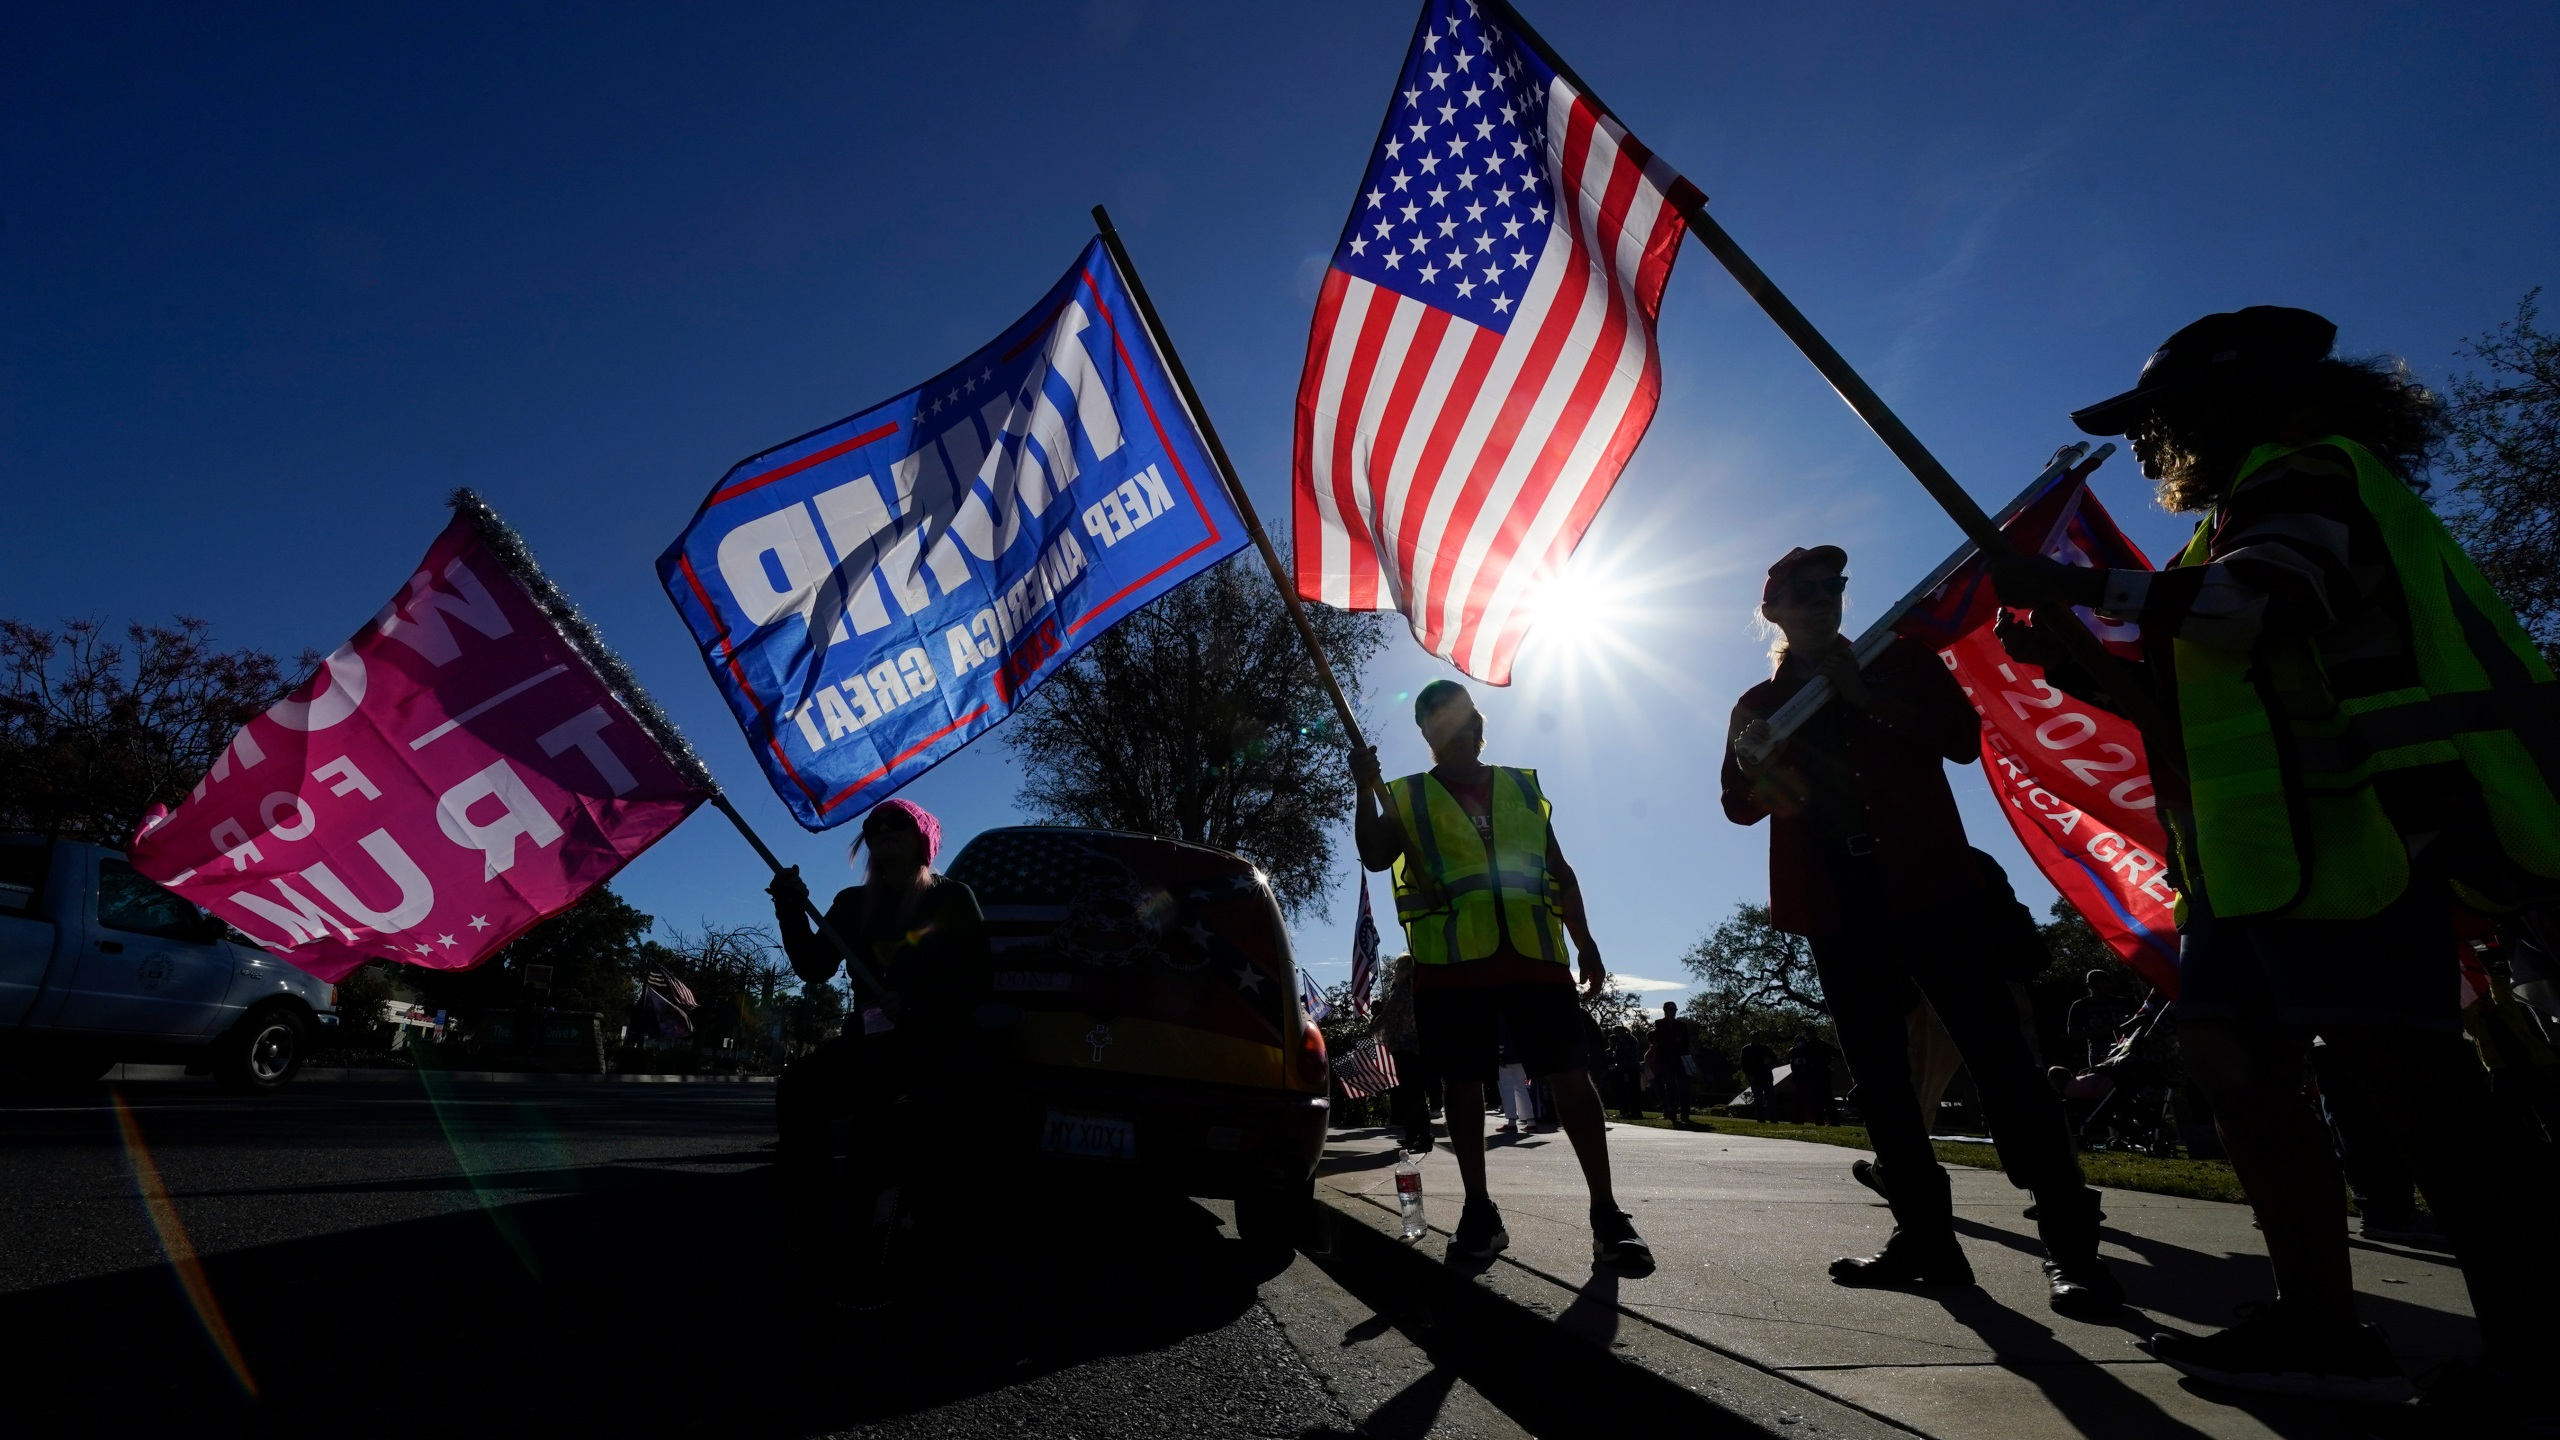 In this Jan. 6, 2021 file photo, people attend a rally in support of President Donald Trump outside Thousand Oaks City Hall in Thousand Oaks, Calif. (AP Photo/Ashley Landis, File)